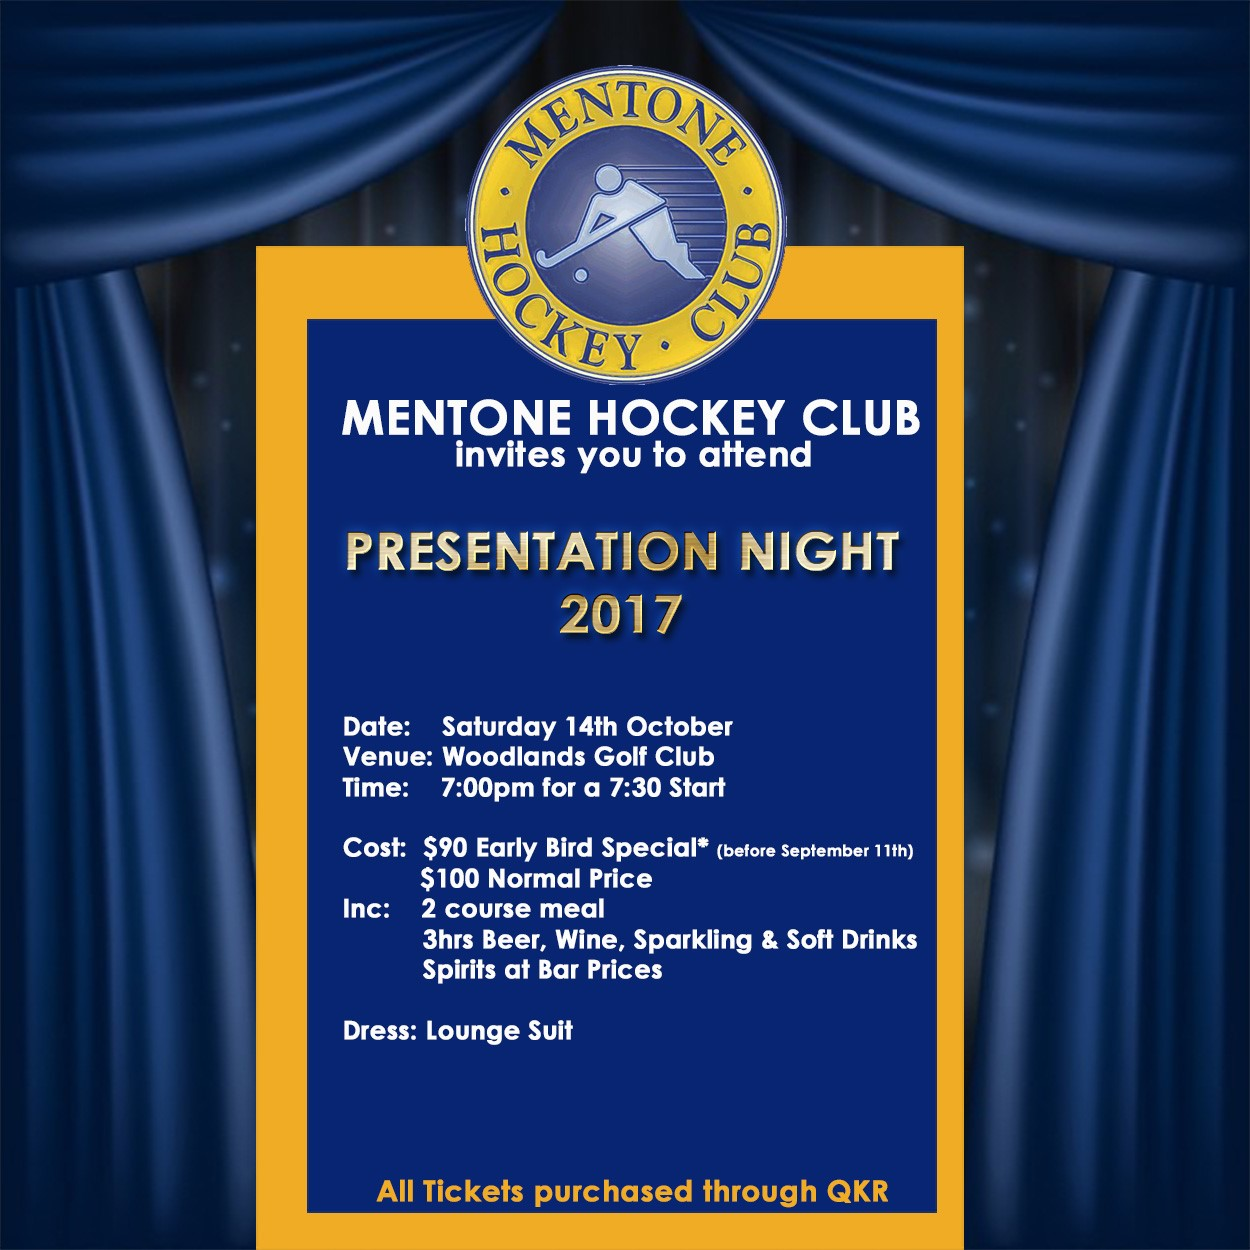 MHC 2017 Presentation Night invite